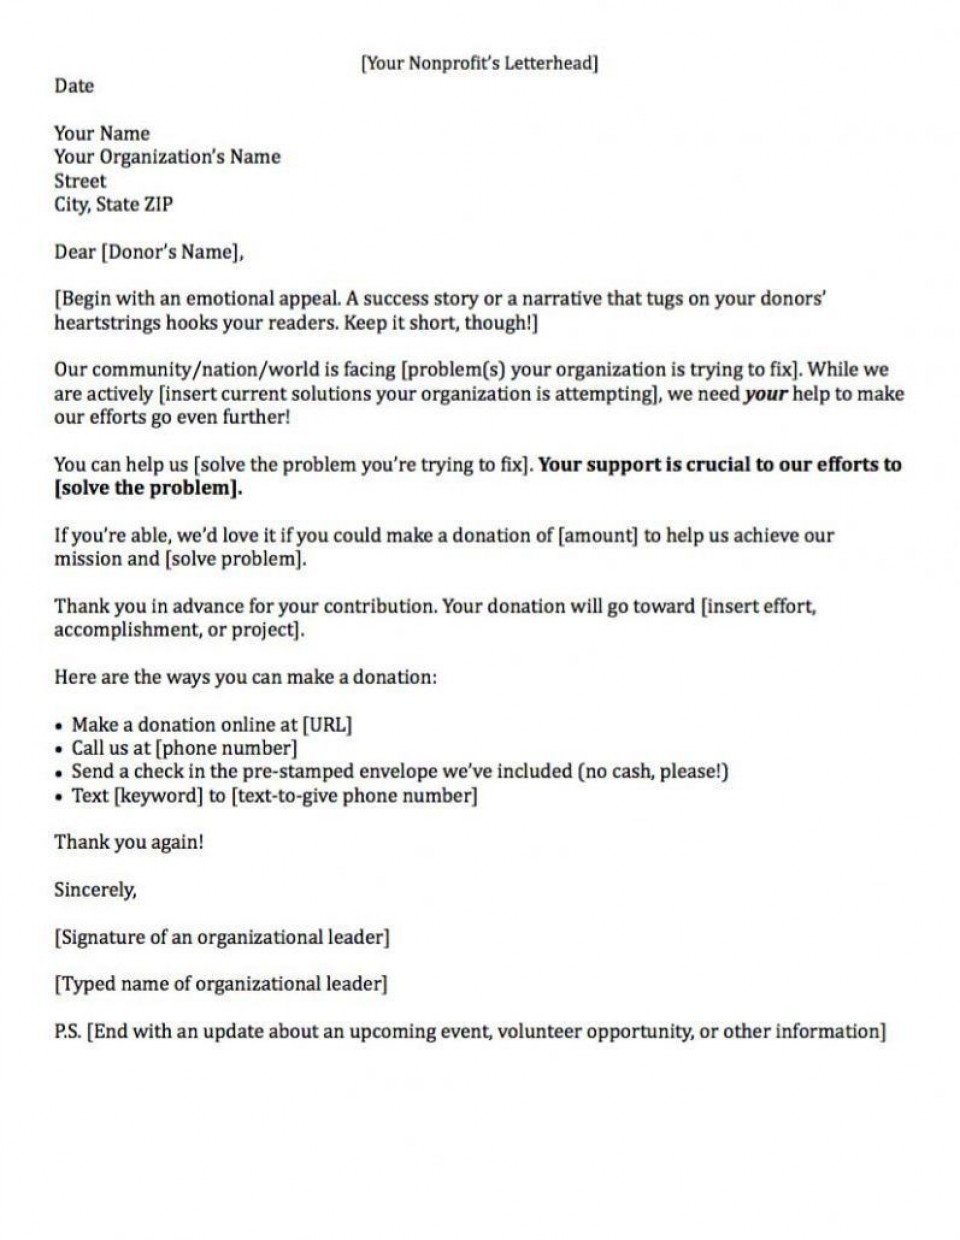 000 Sensational Fund Raising Letter Template Example  Fundraising For Mission Trip School Sample Of A Nonprofit Organization960